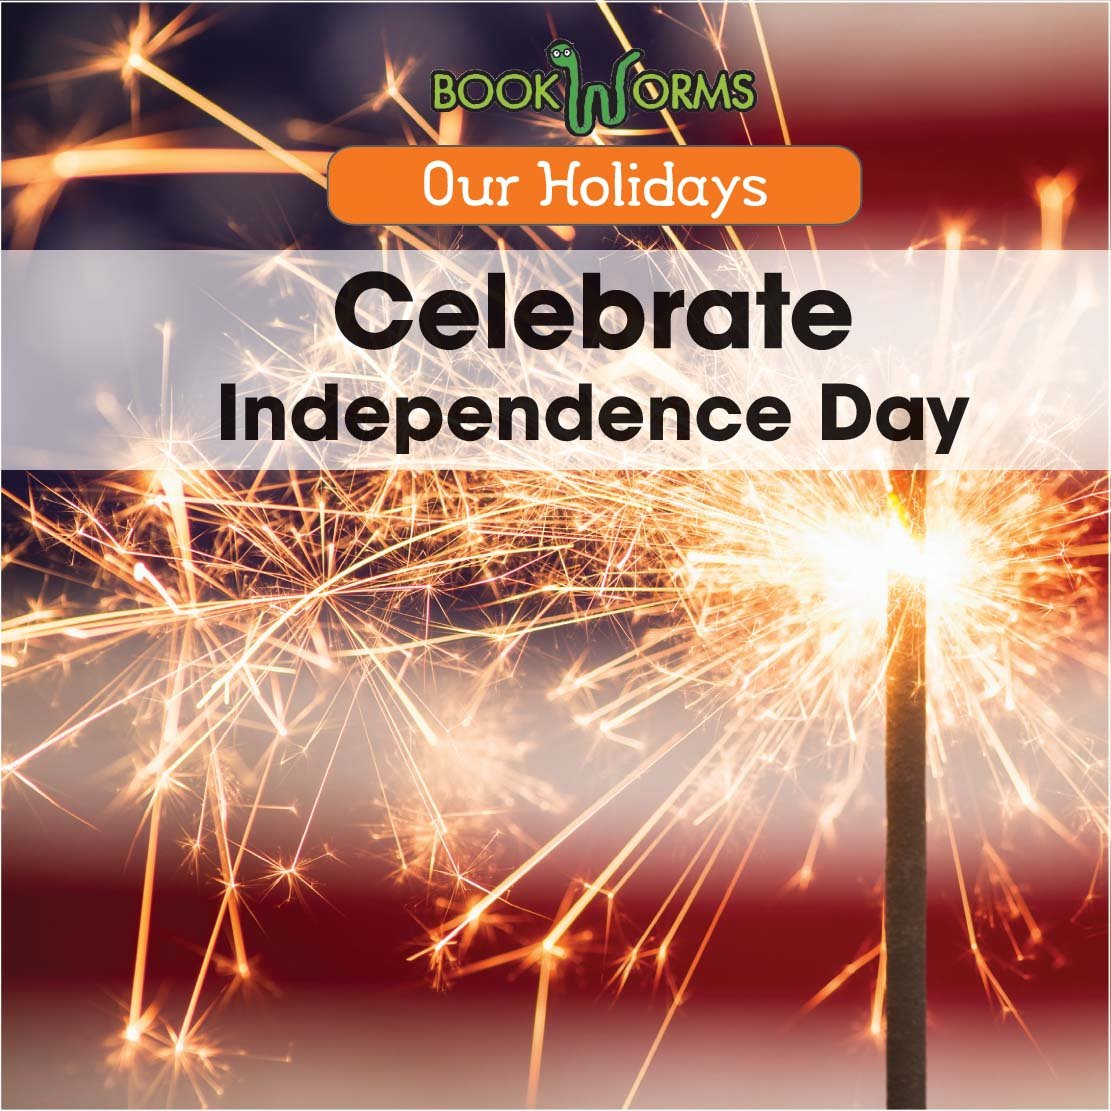 Celebrate Independence Day (Our Holidays)